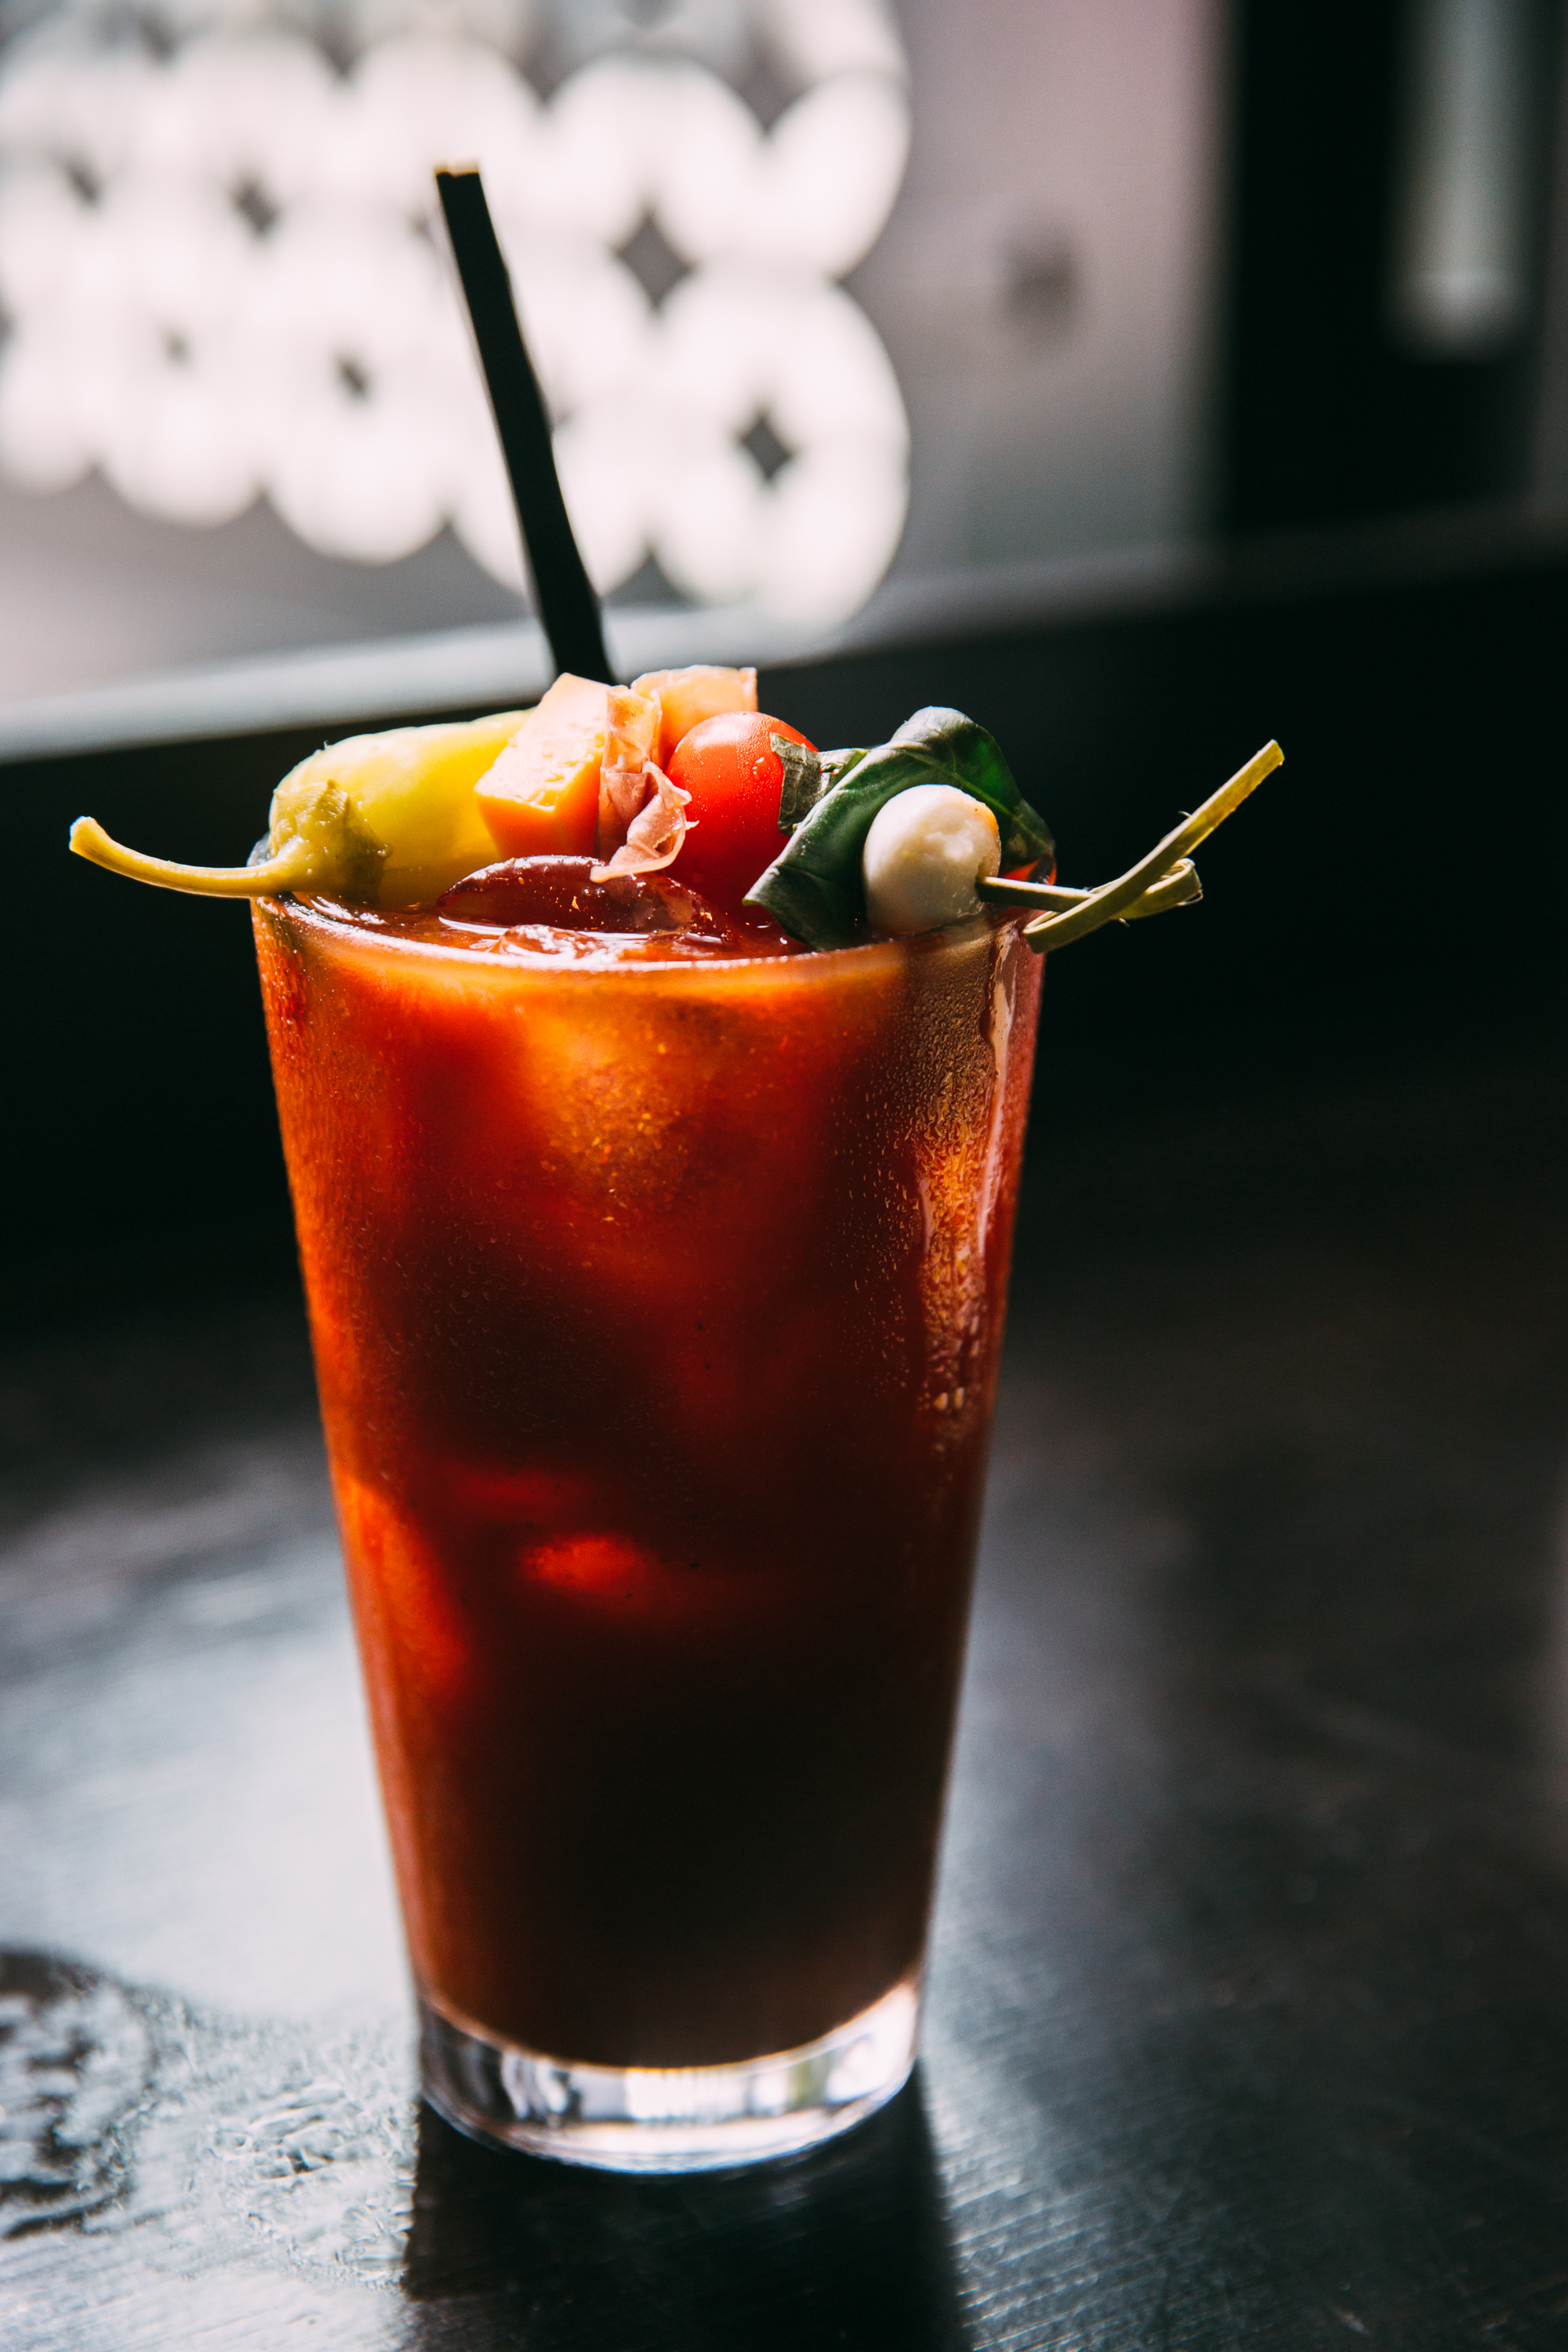 Bloody mary from stella barra